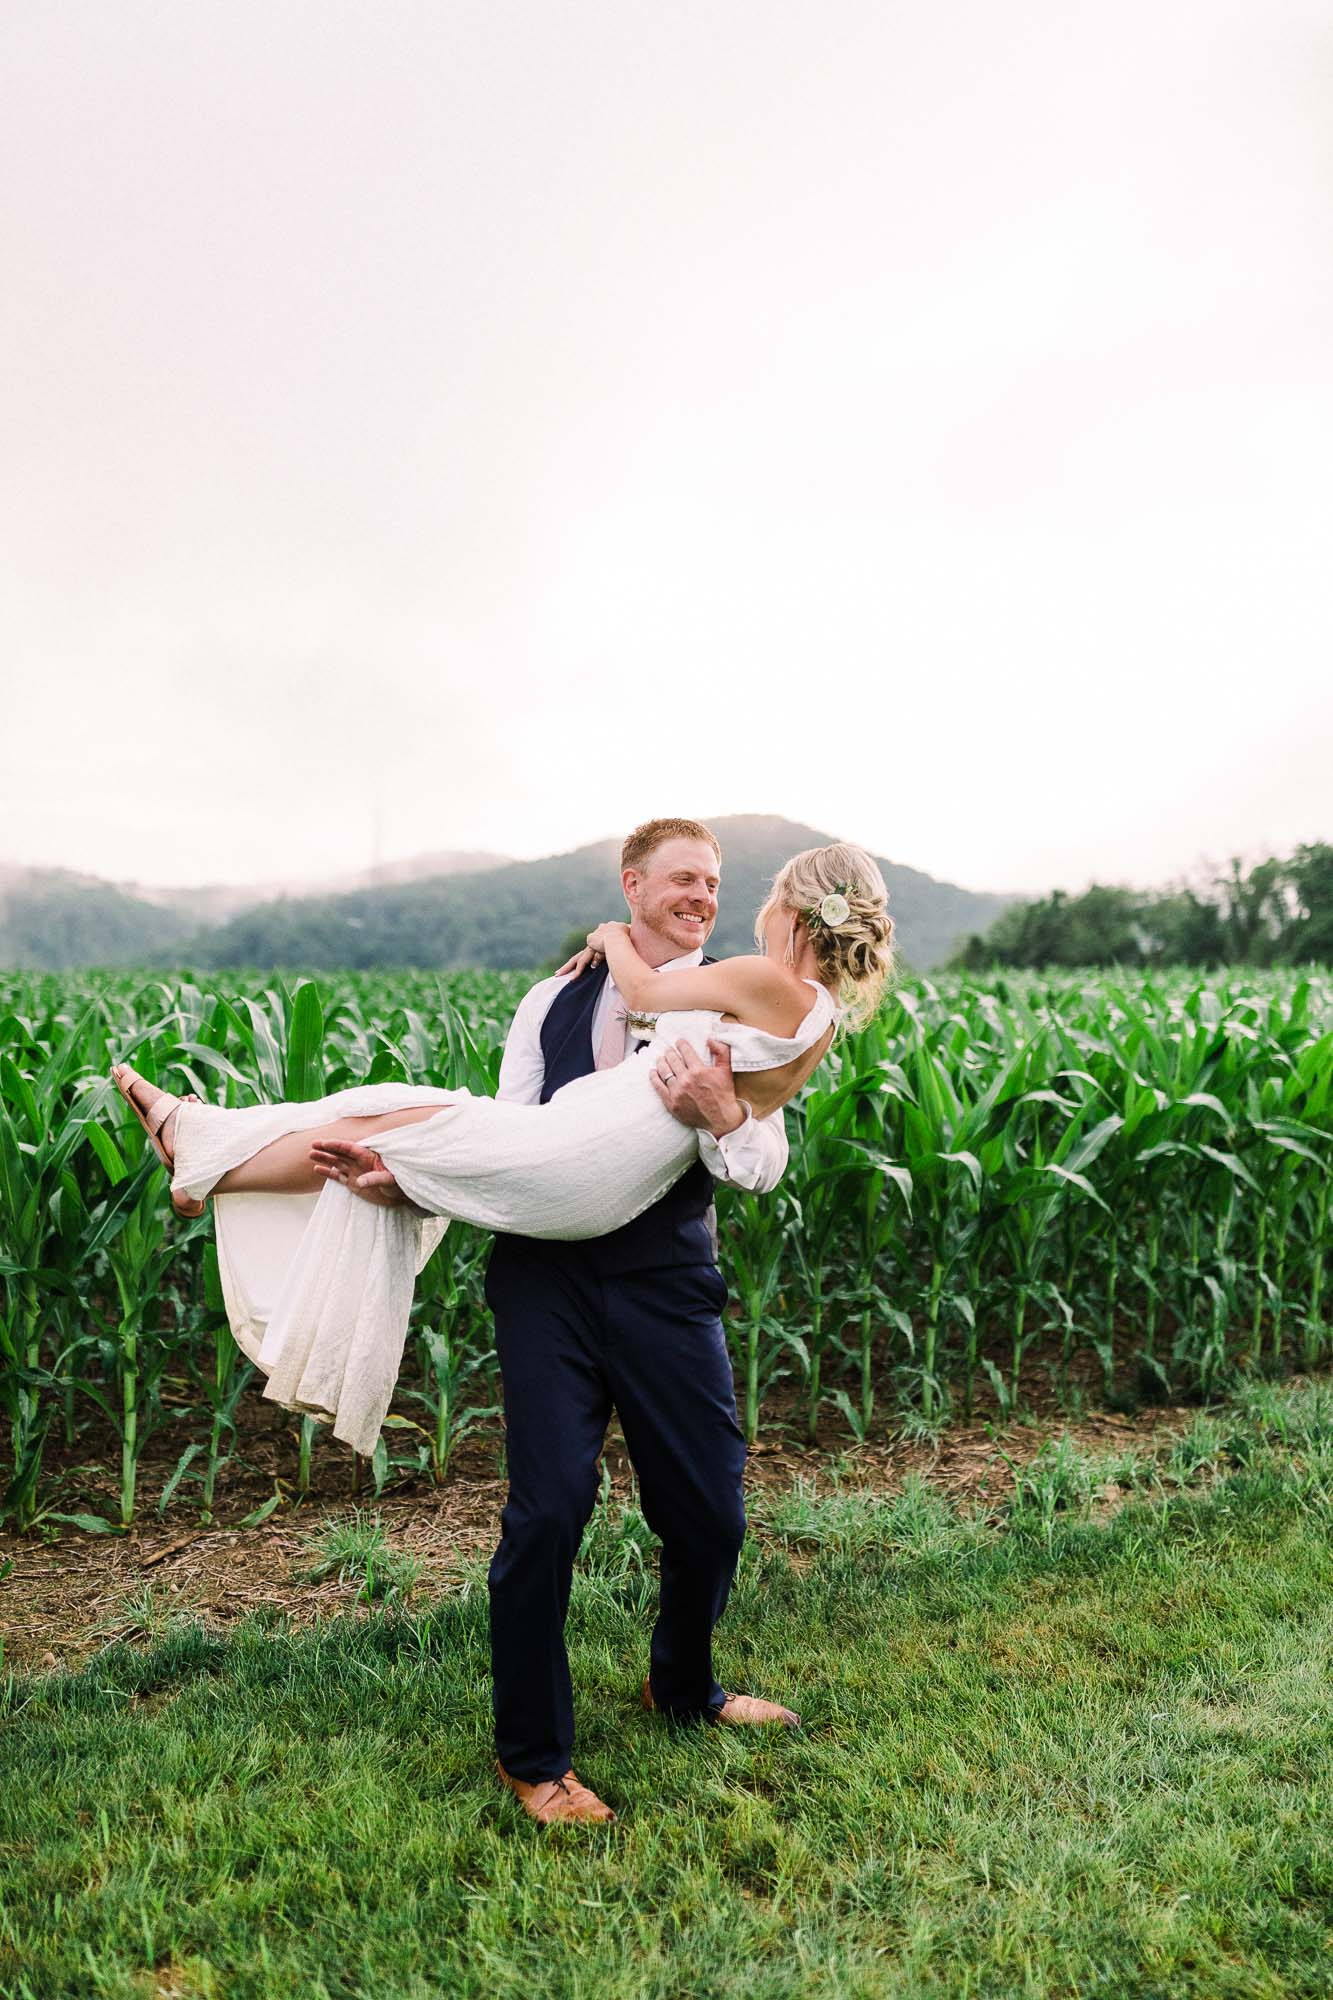 Muncy-backyard-farm-wedding-5443.jpg